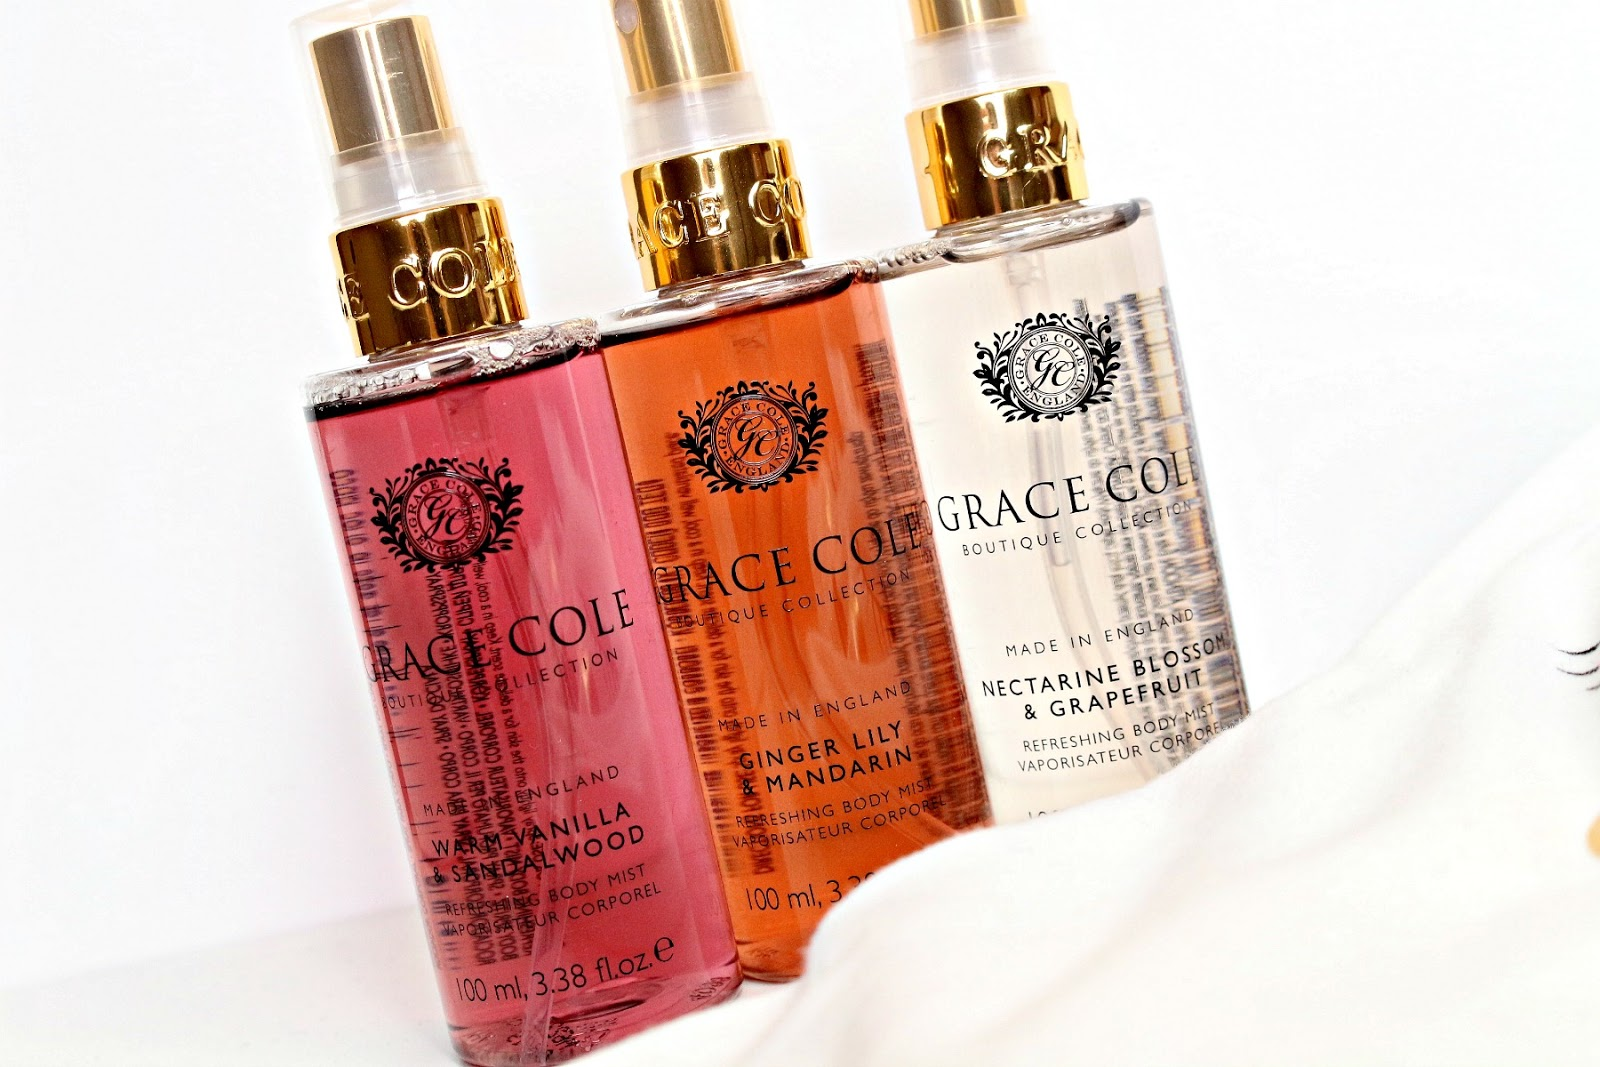 Grace Cole Boutique Collection body mist